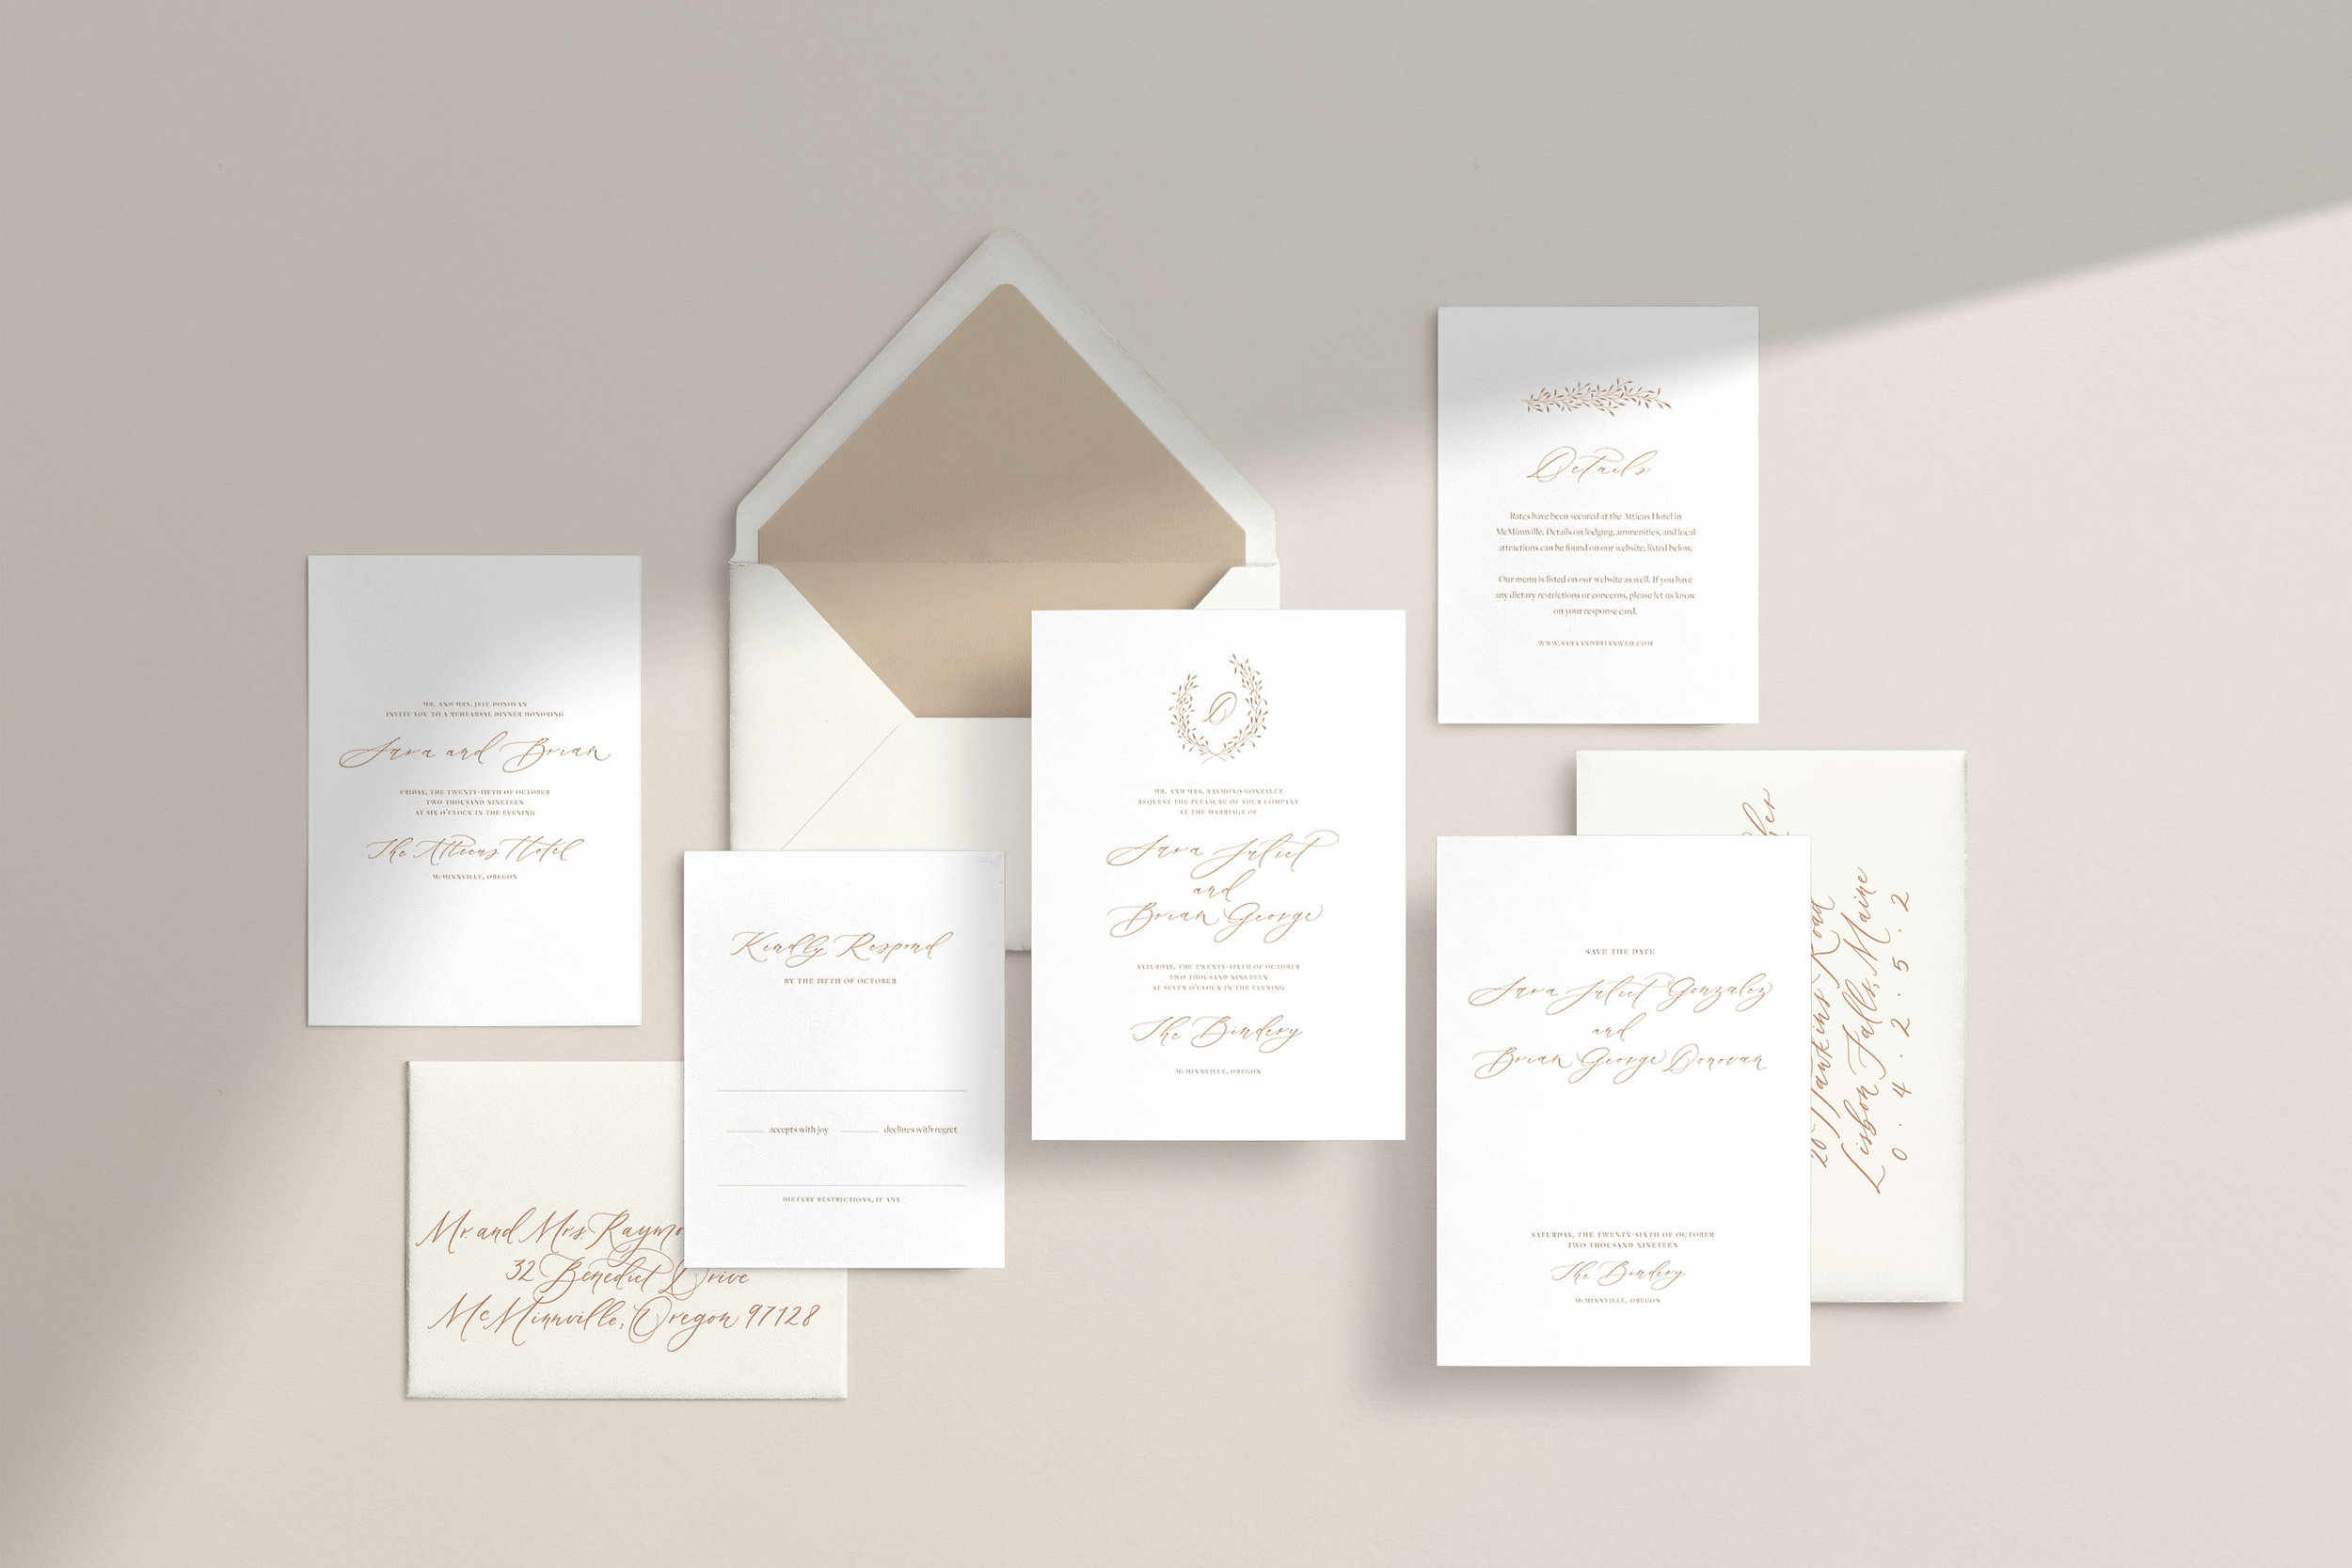 Classic and elegant wedding invitation design by Caitlin O'Bryant Design.